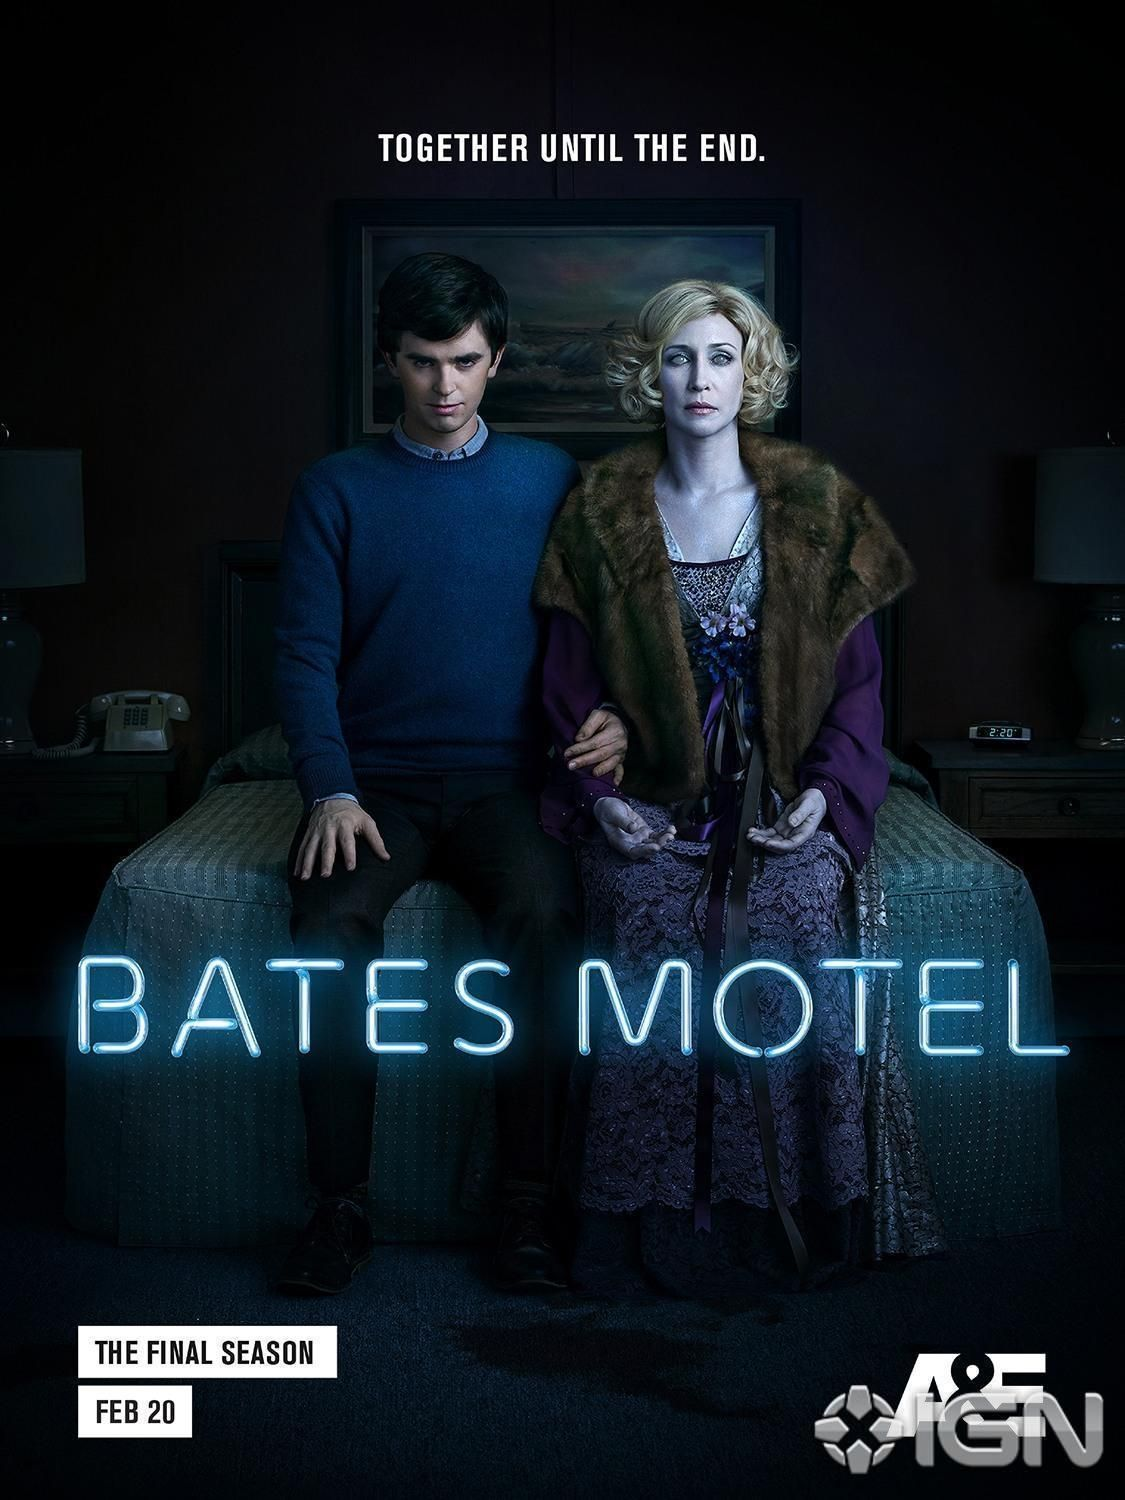 Bates Motel Morbid Posters For The Final Season Are Here Bates Motel Bates Motel Season 5 Bates Hotel